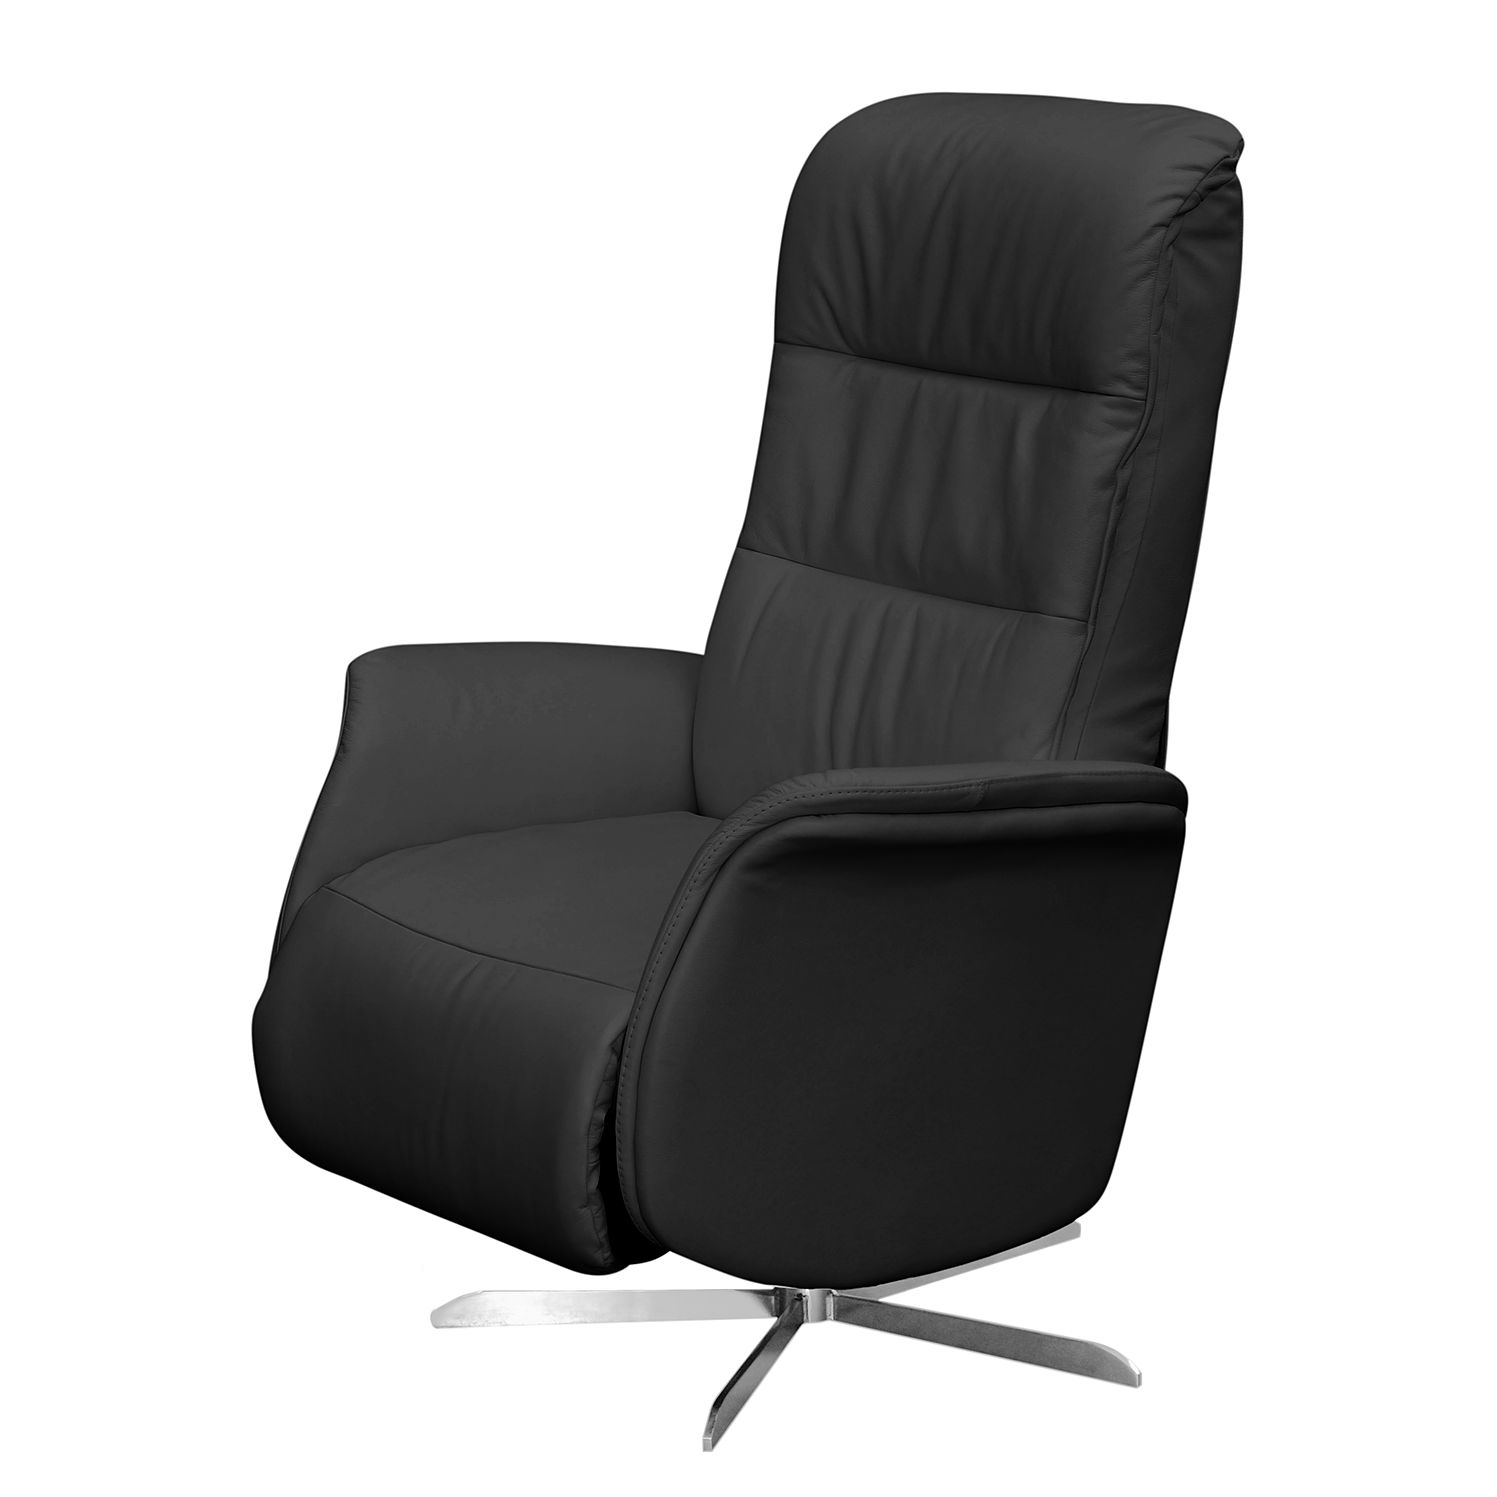 home24 Relaxsessel Maryland III   Wohnzimmer > Sessel > Relaxsessel   Siehe shop   Fredriks